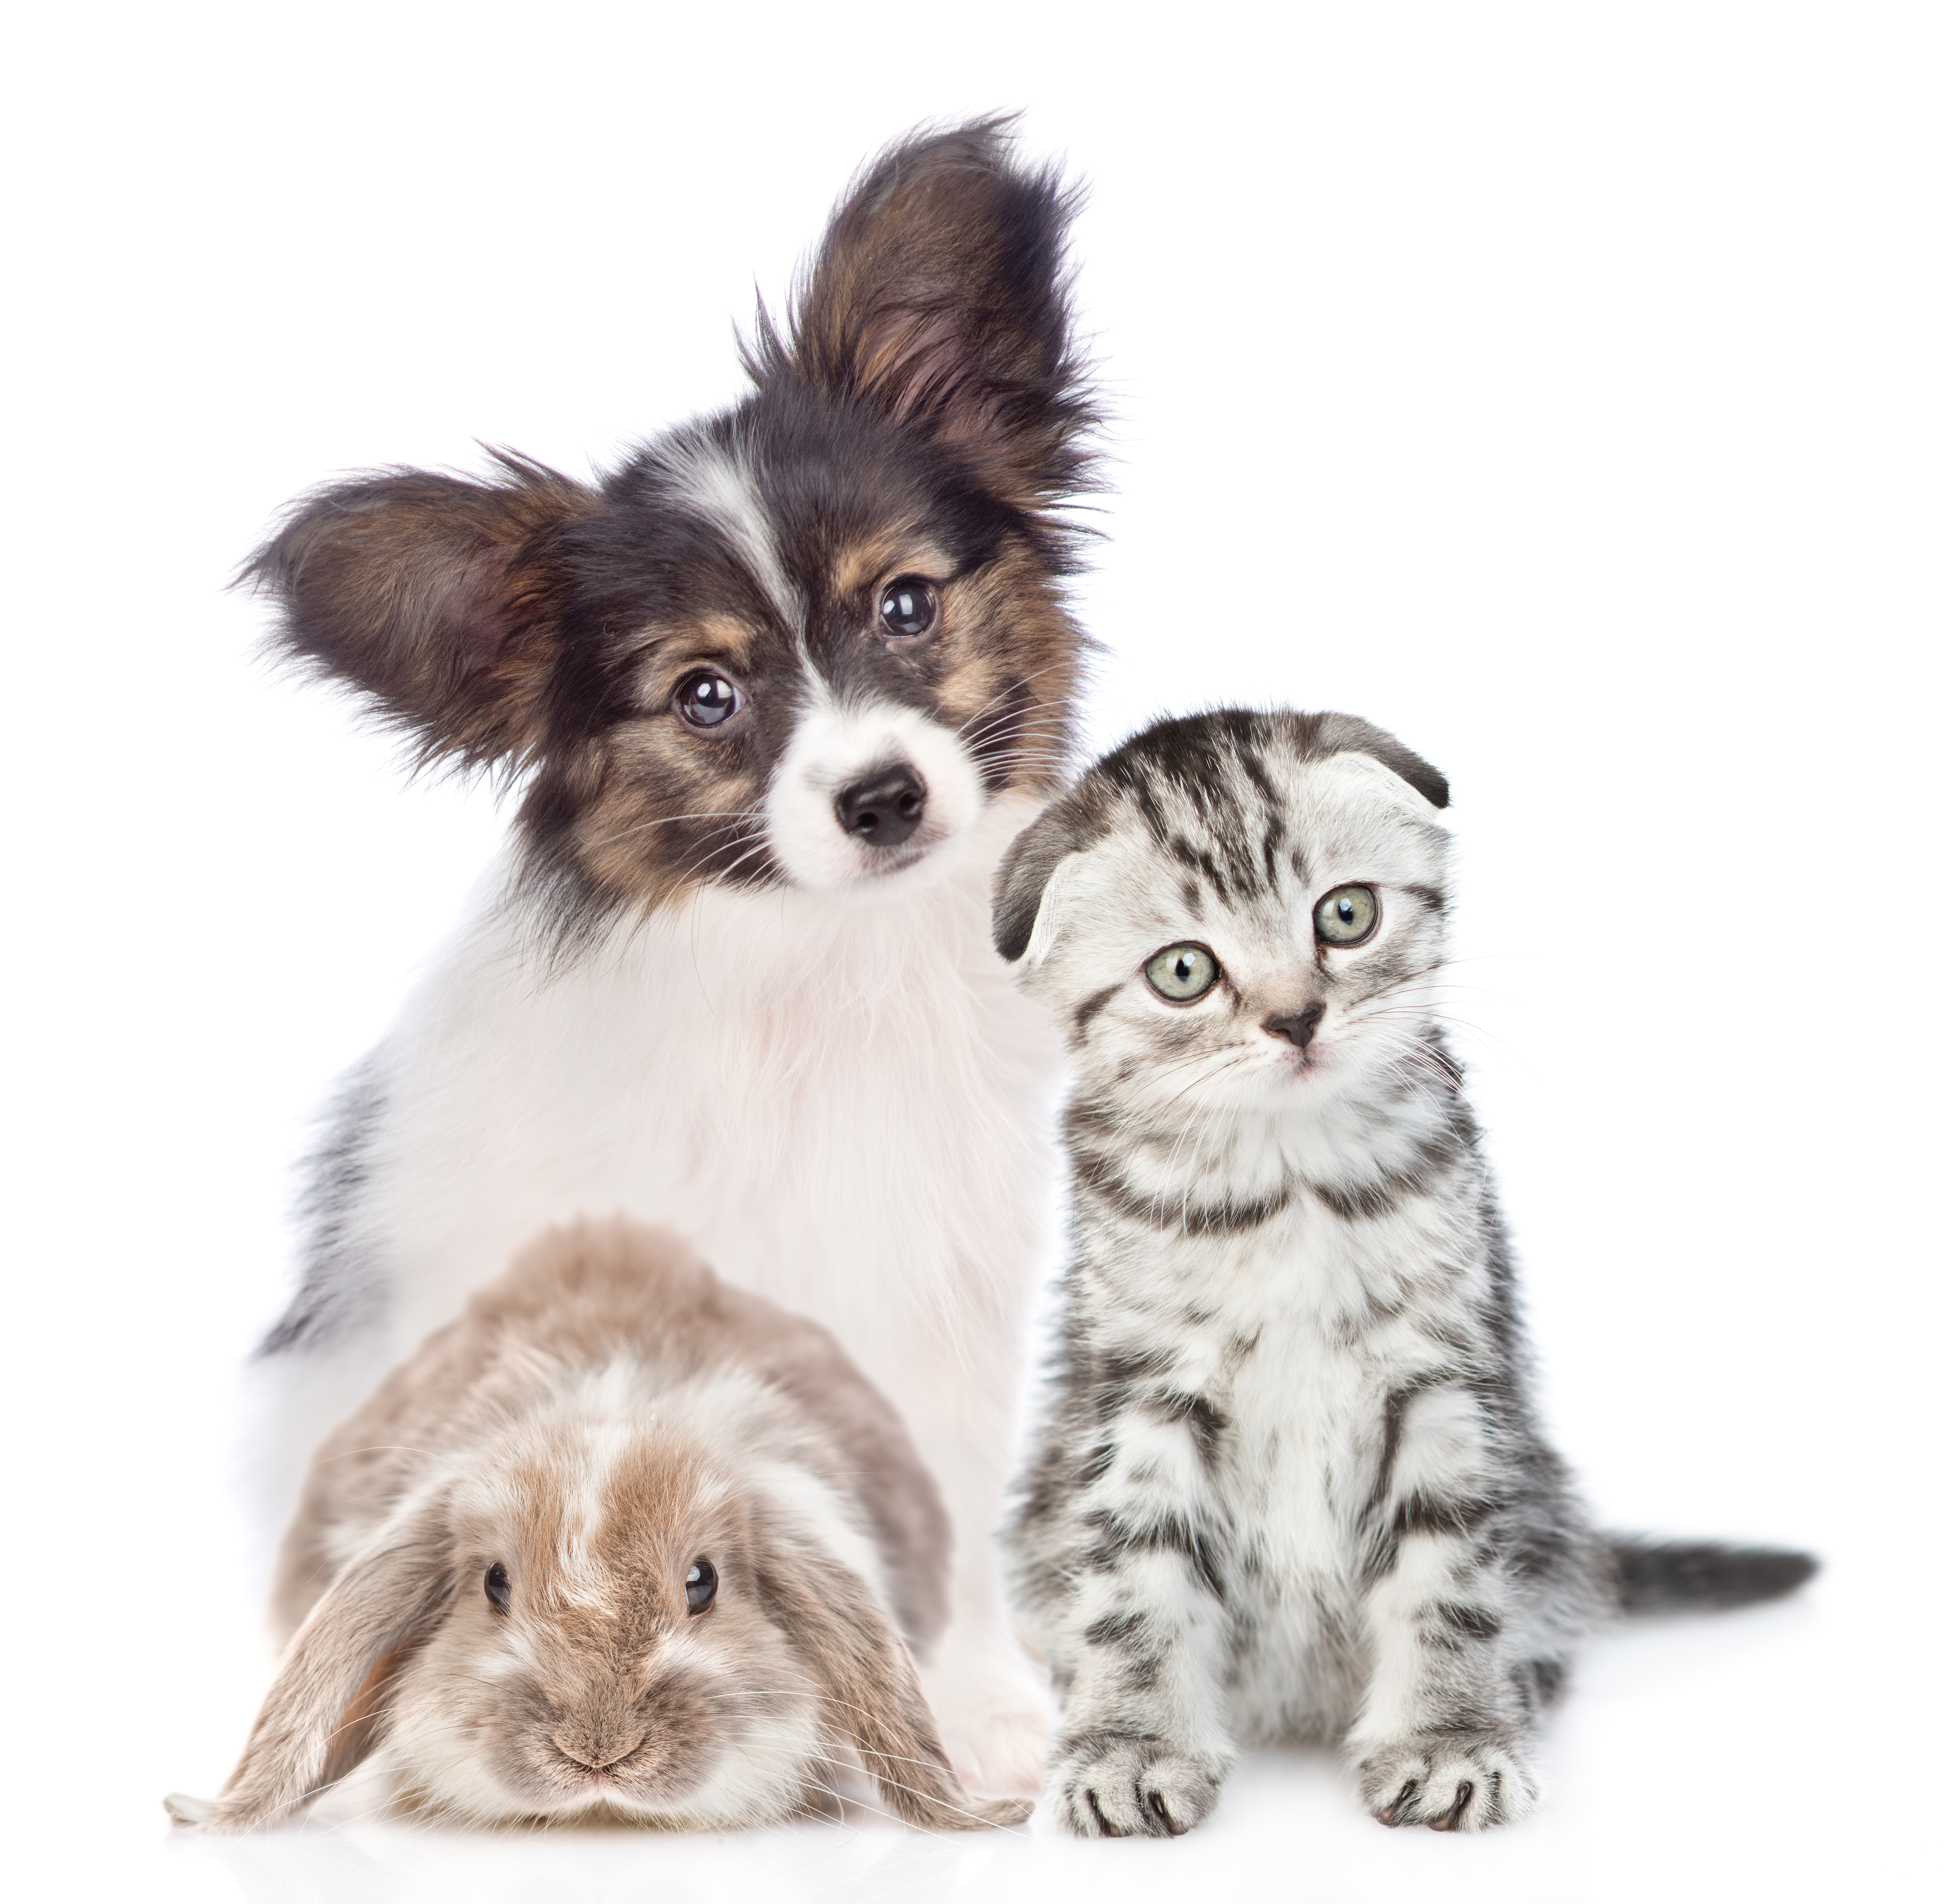 Bunny, puppy, and kitten